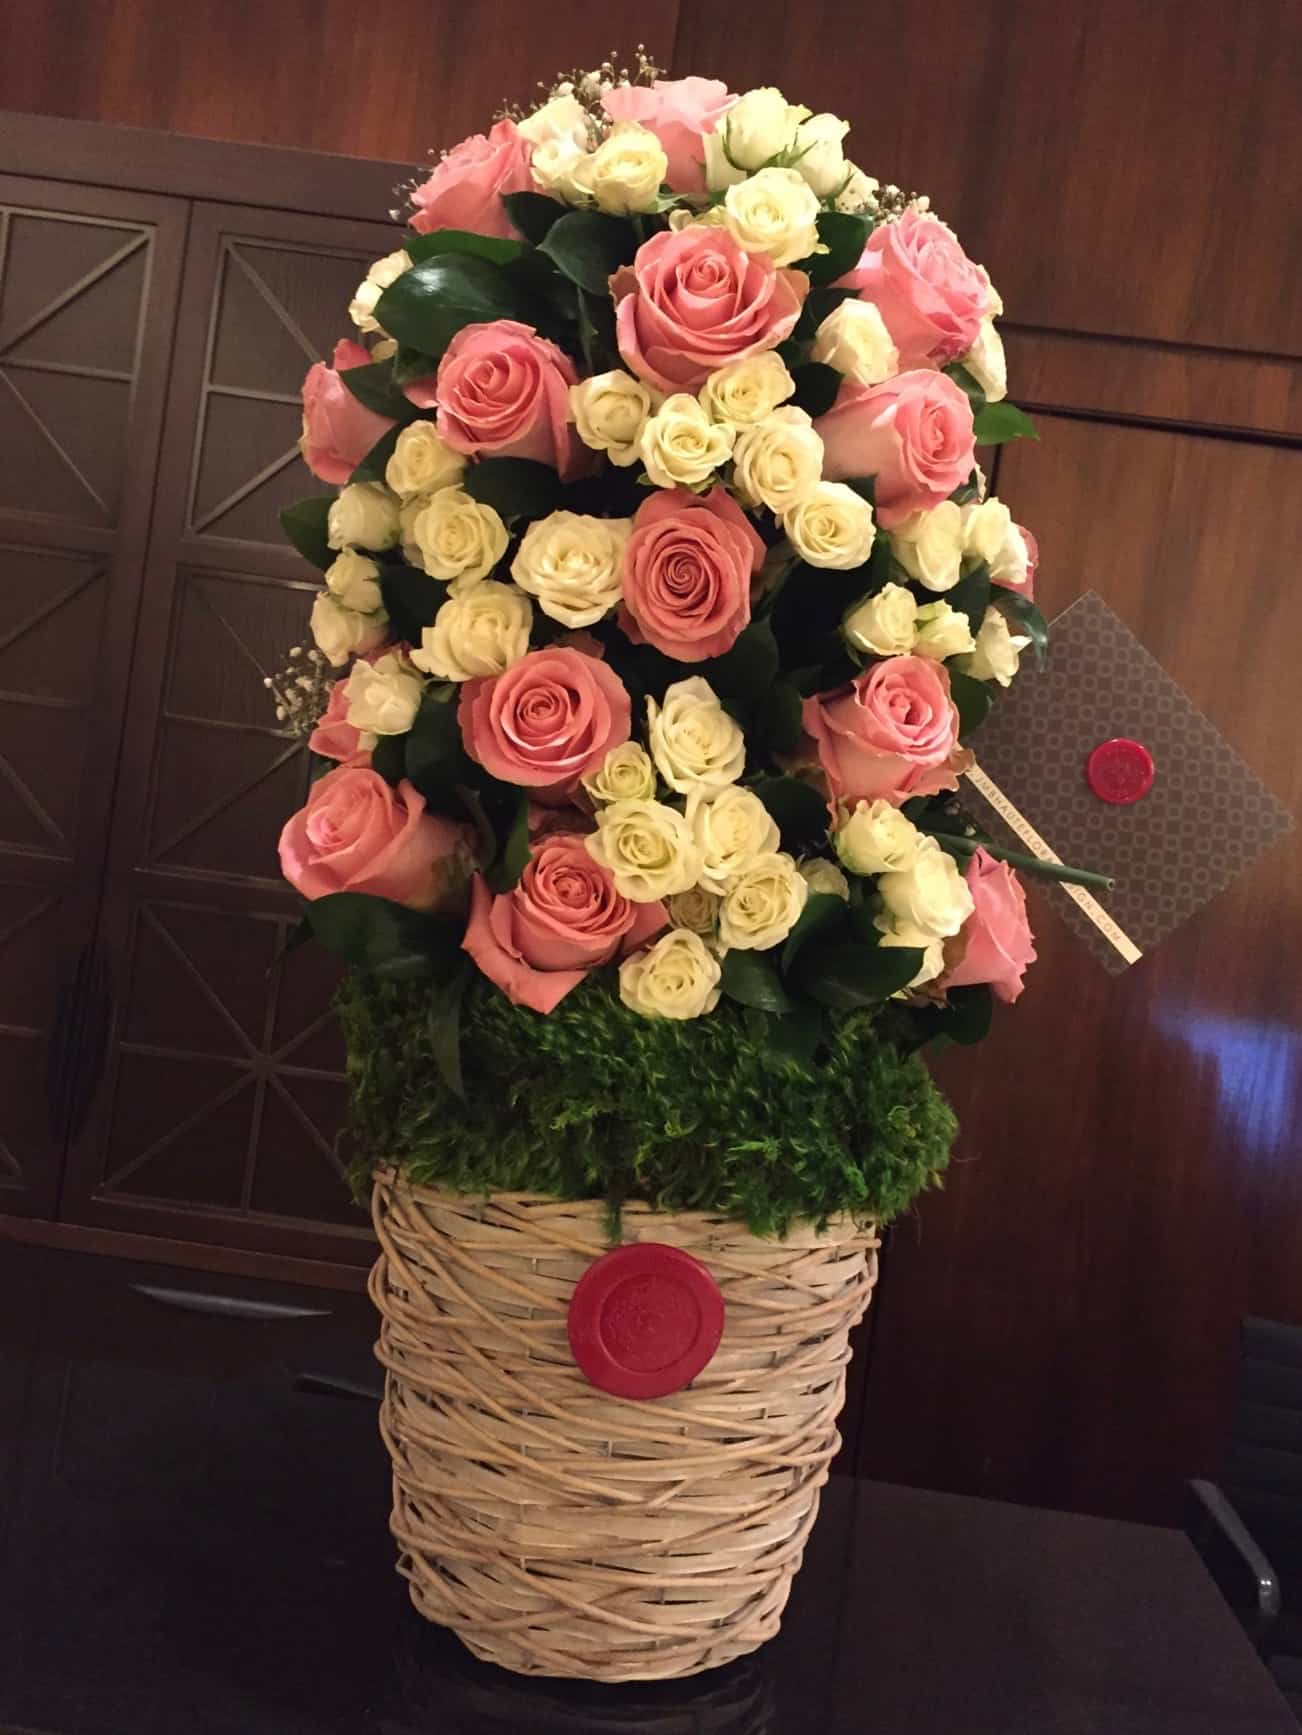 Tower of white and pink premium and spray roses with foliage over branch container with a moss